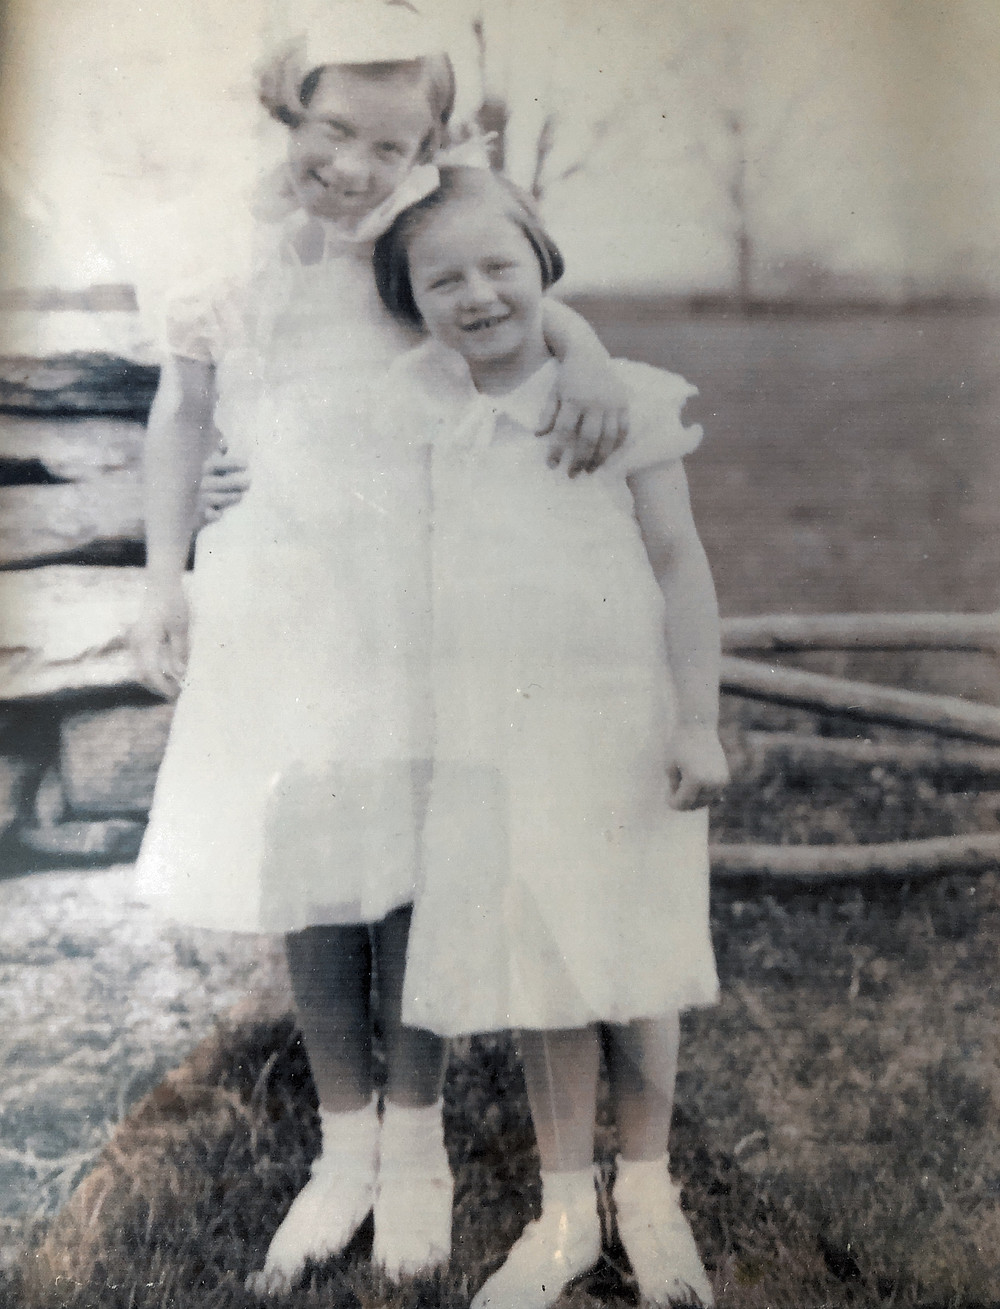 My Aunt, age 10 and my Mom, age 6